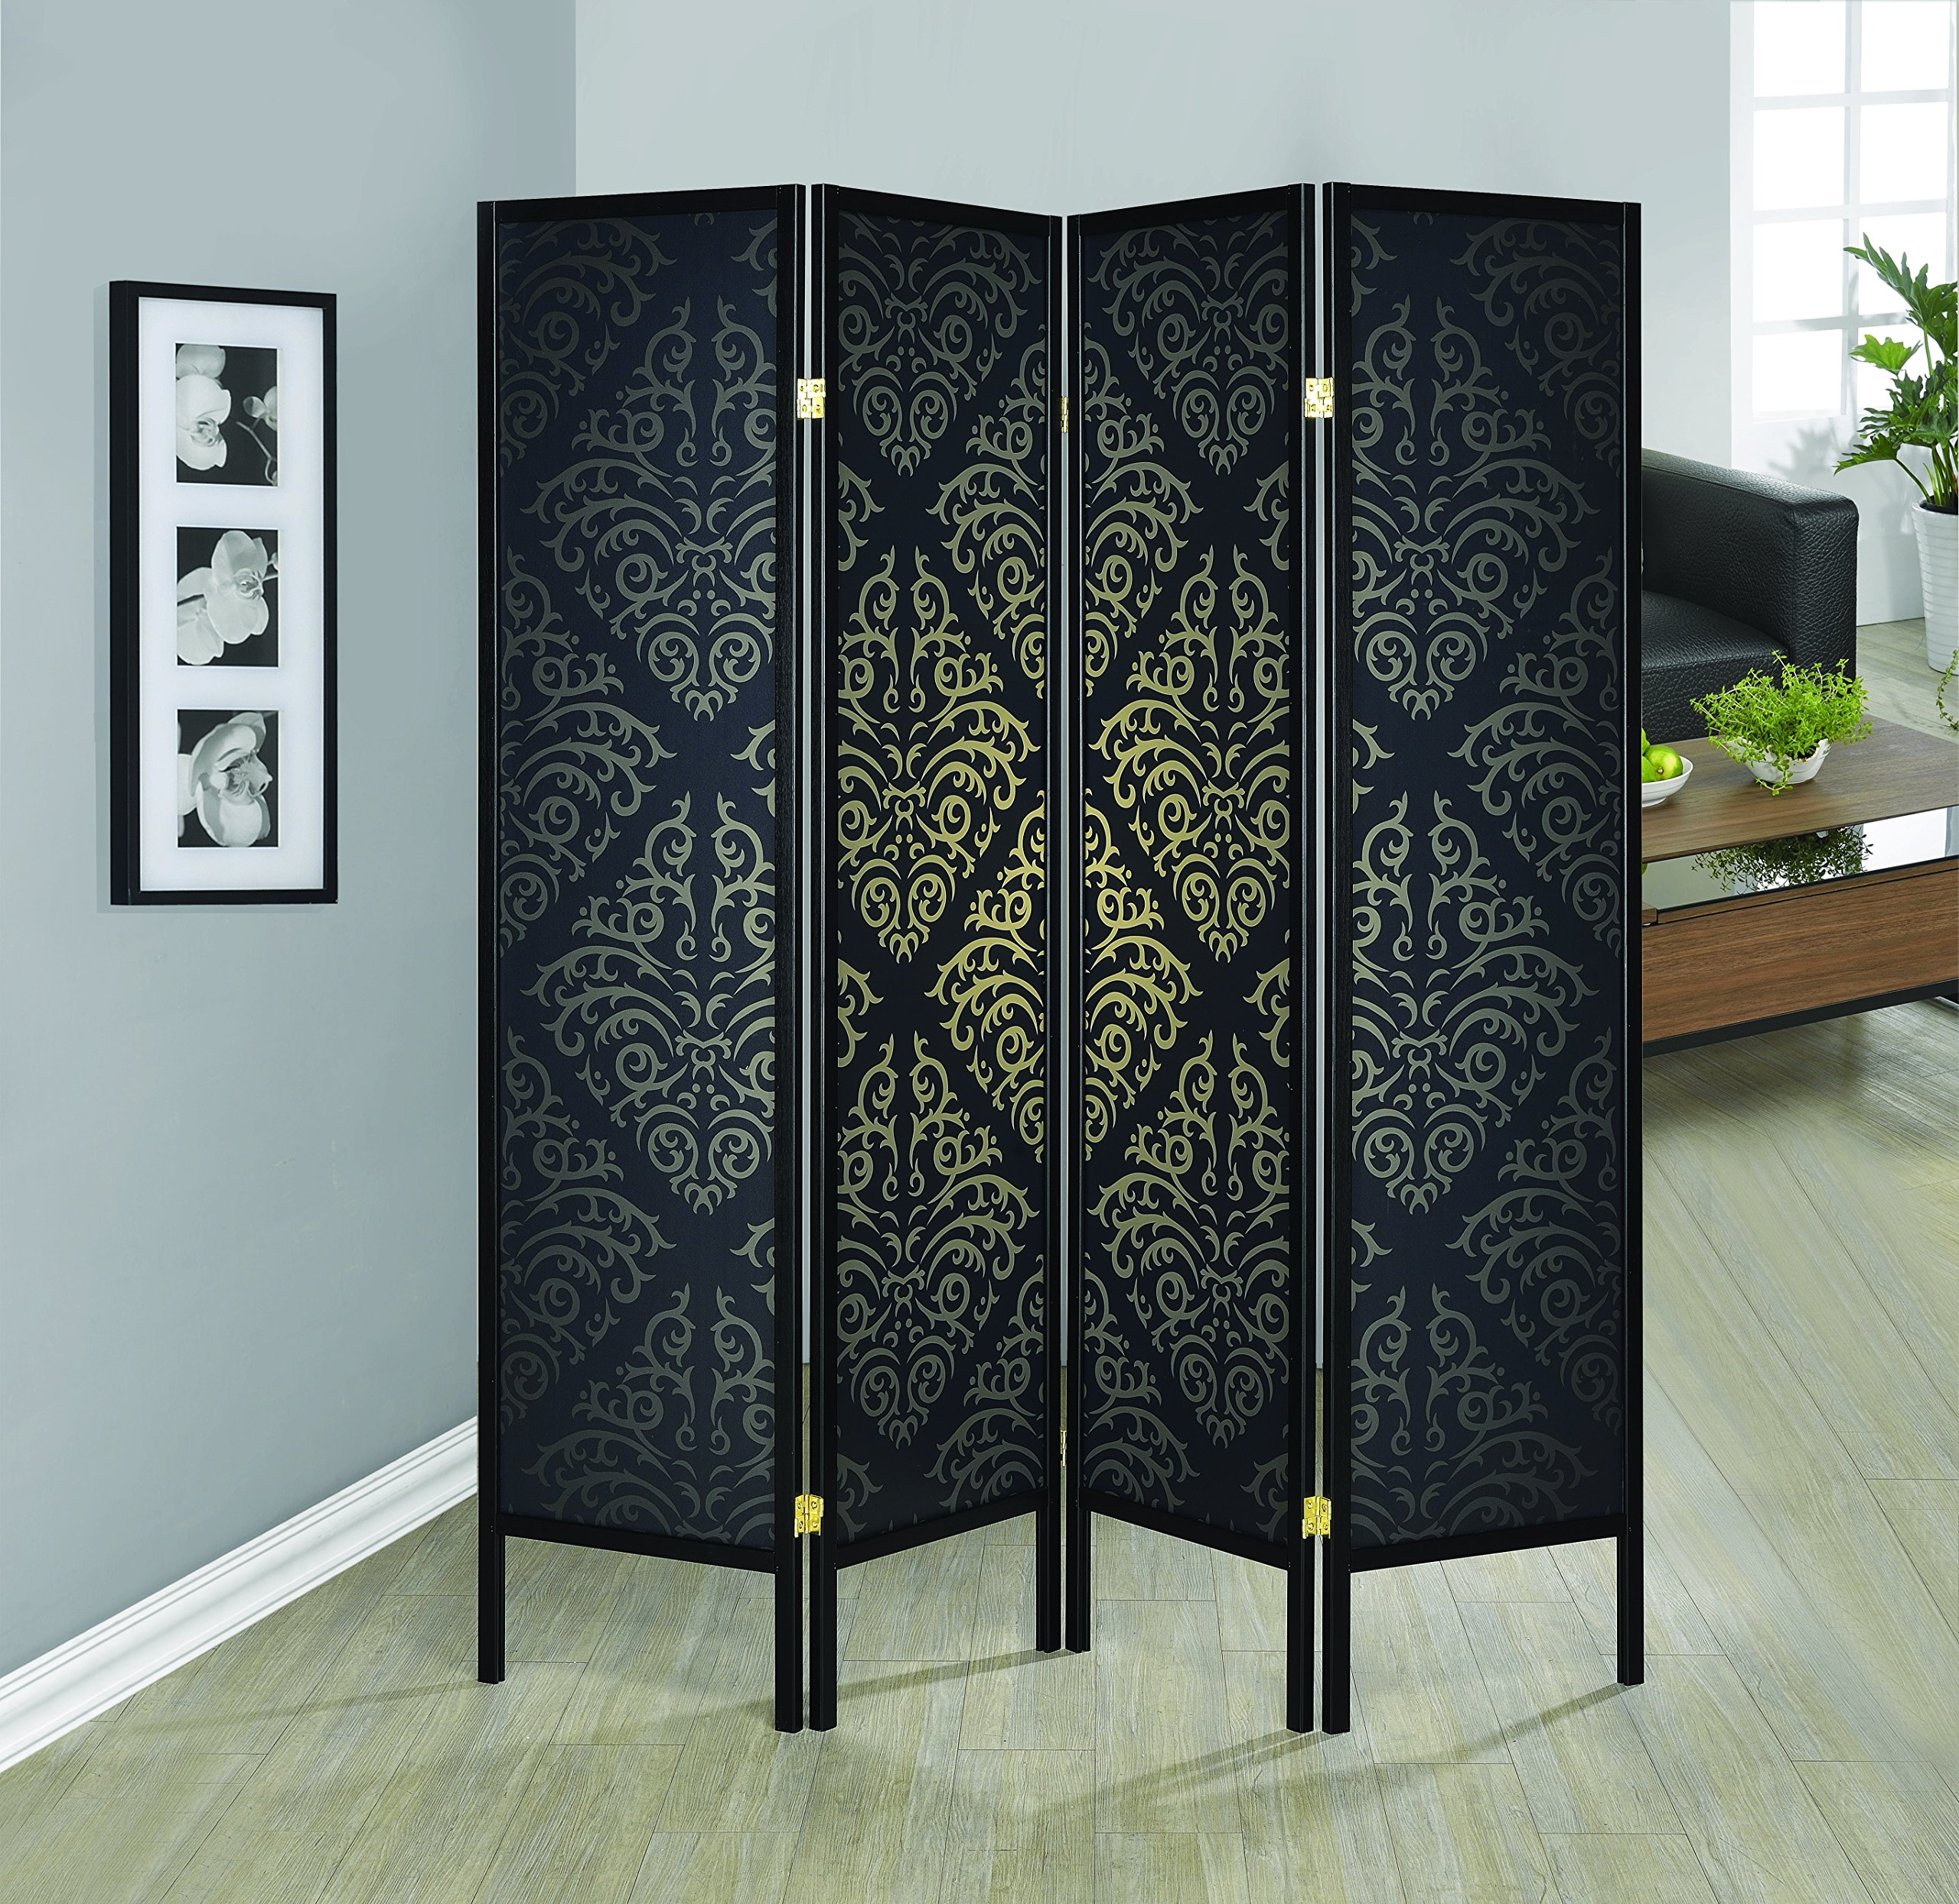 Coaster Home Furnishings 901632 Damask Print Folding Screen, NULL, Black by Coaster Home Furnishings (Image #1)